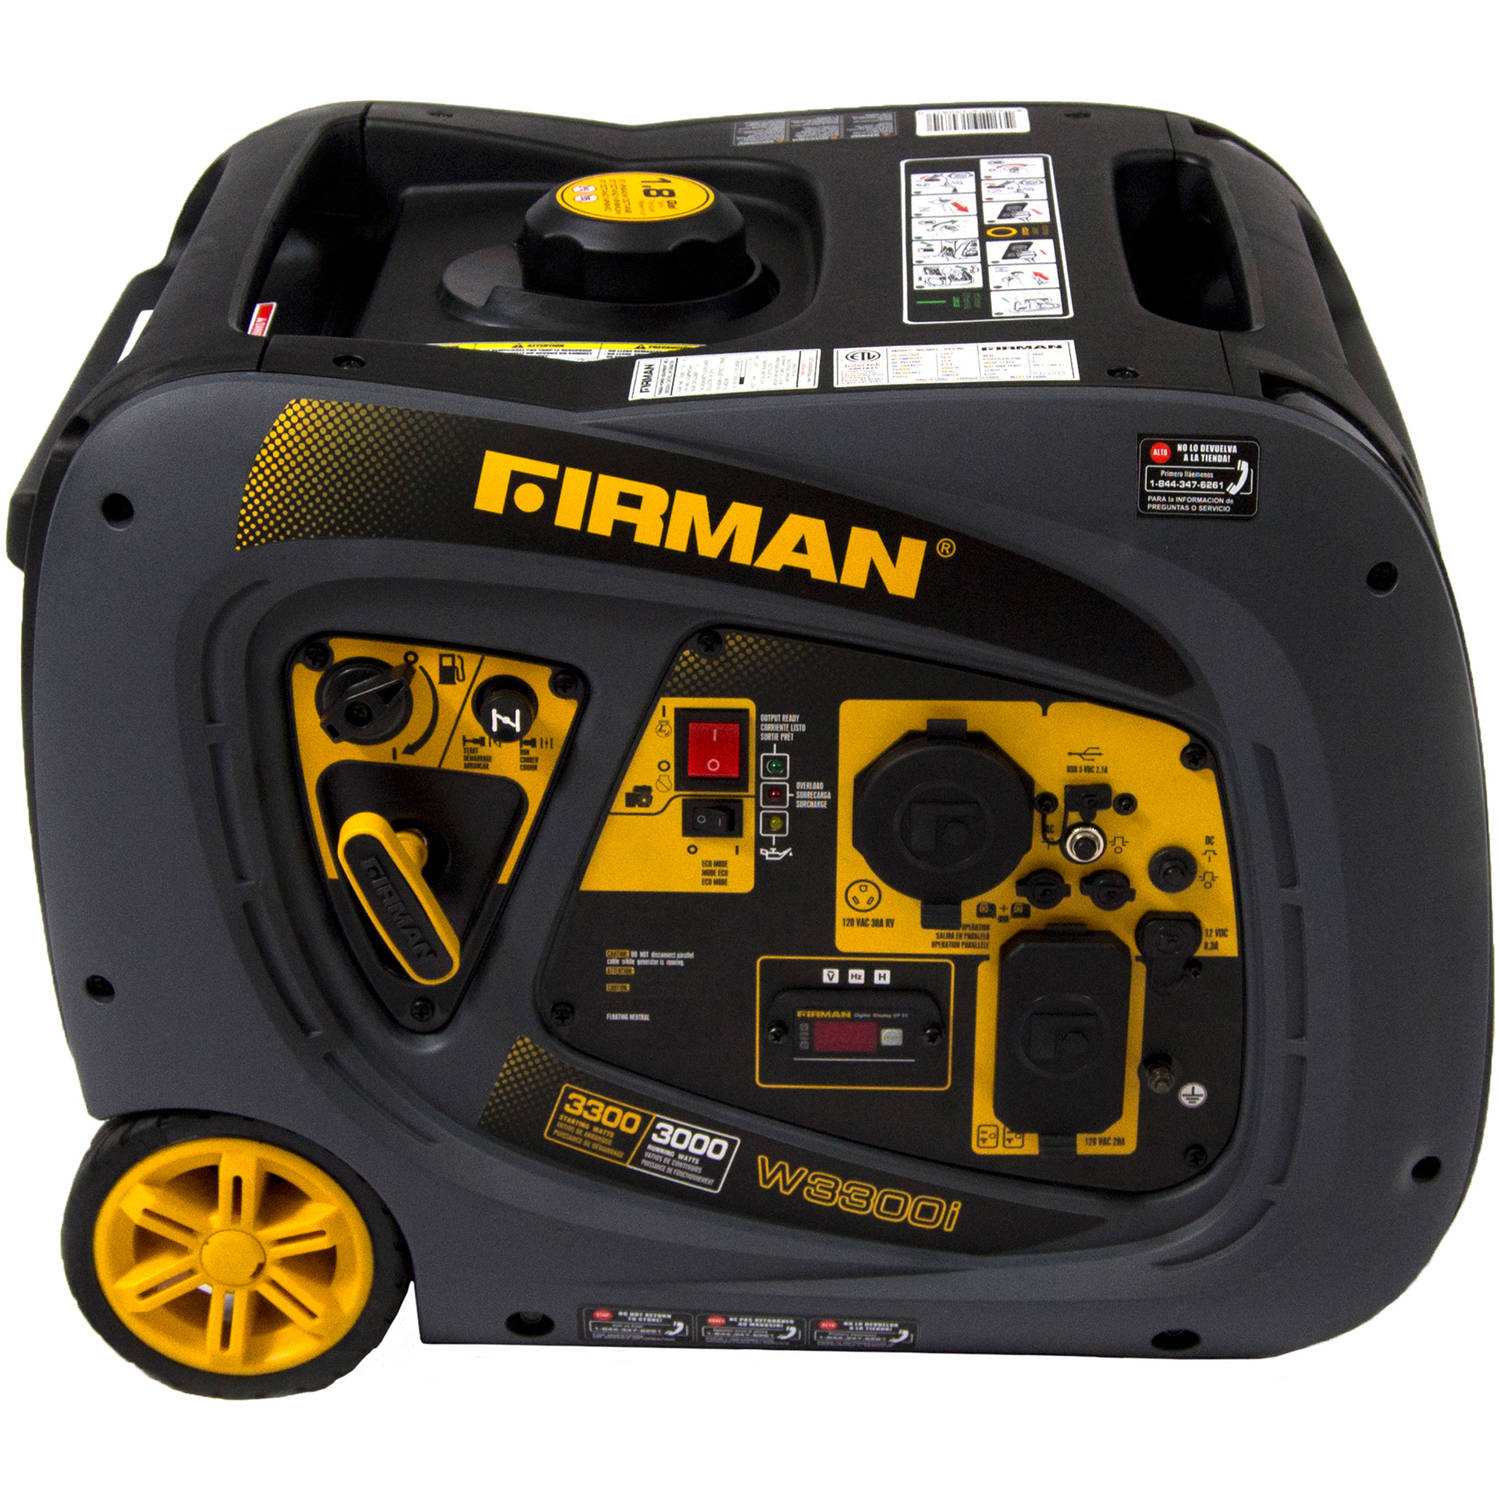 Firman Power Equipment W03081 3000 3300 Watt (Whisper Series) Extended Run Time Portable Gas Inverter, Recoil Start by Sumec